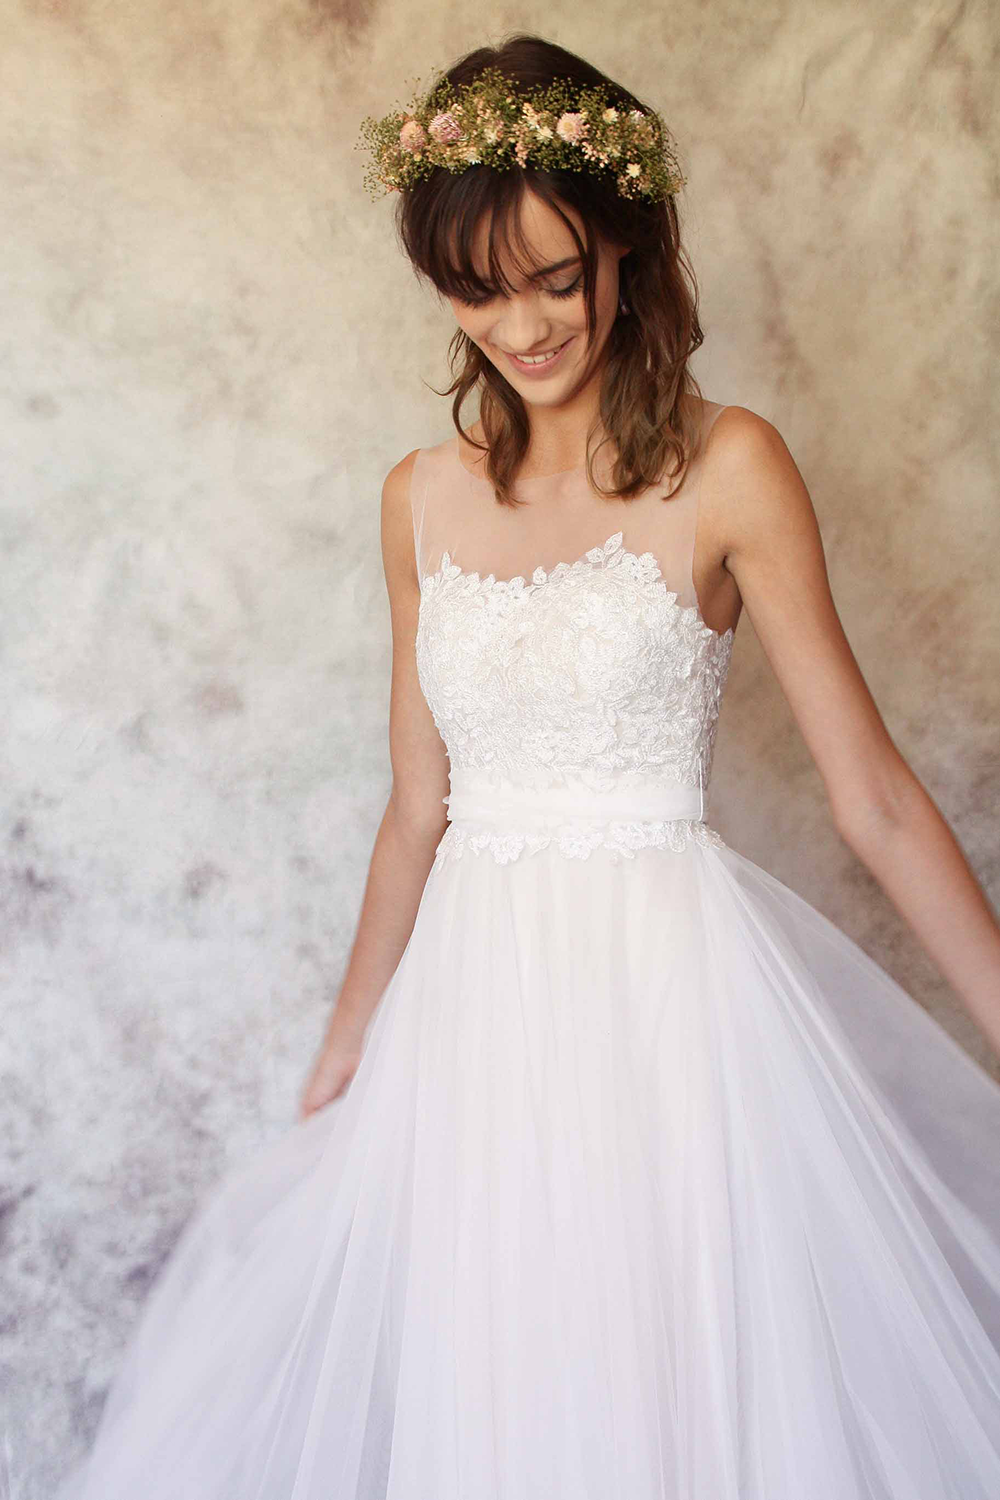 Hera sample gown size 10-12